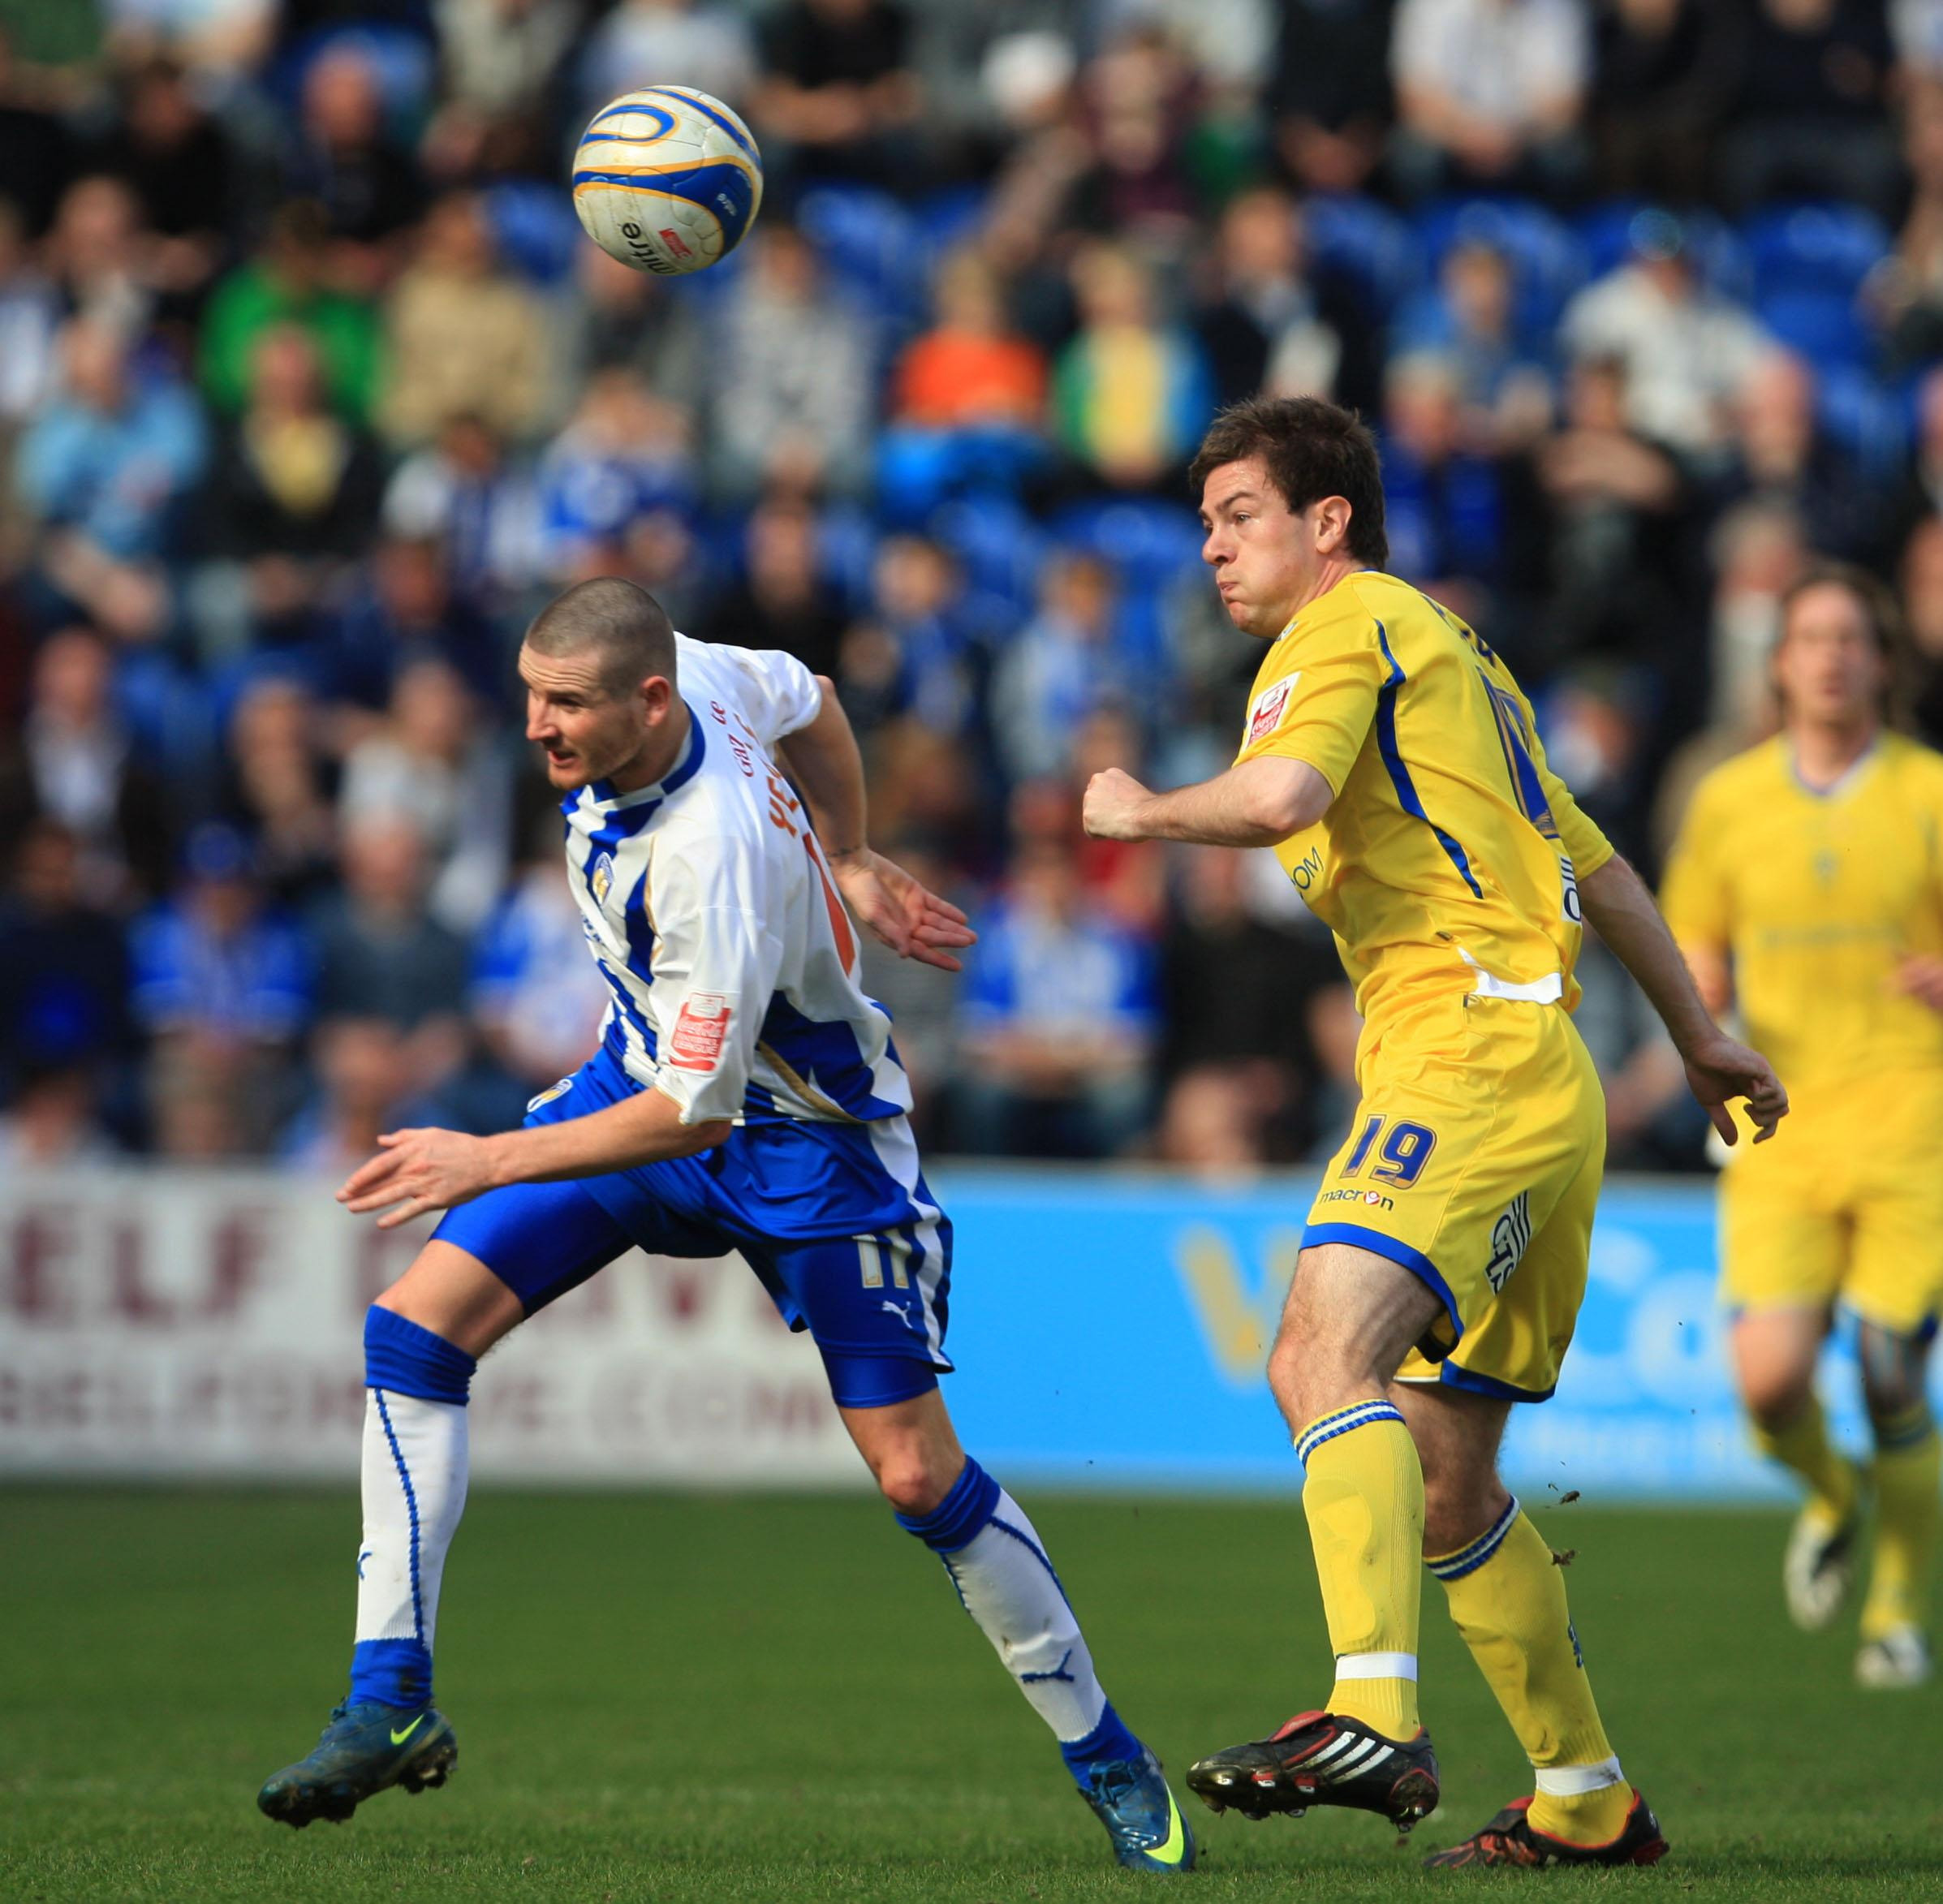 Mark Yeates in action for Colchester against Leeds' former City loanee Ben Parker